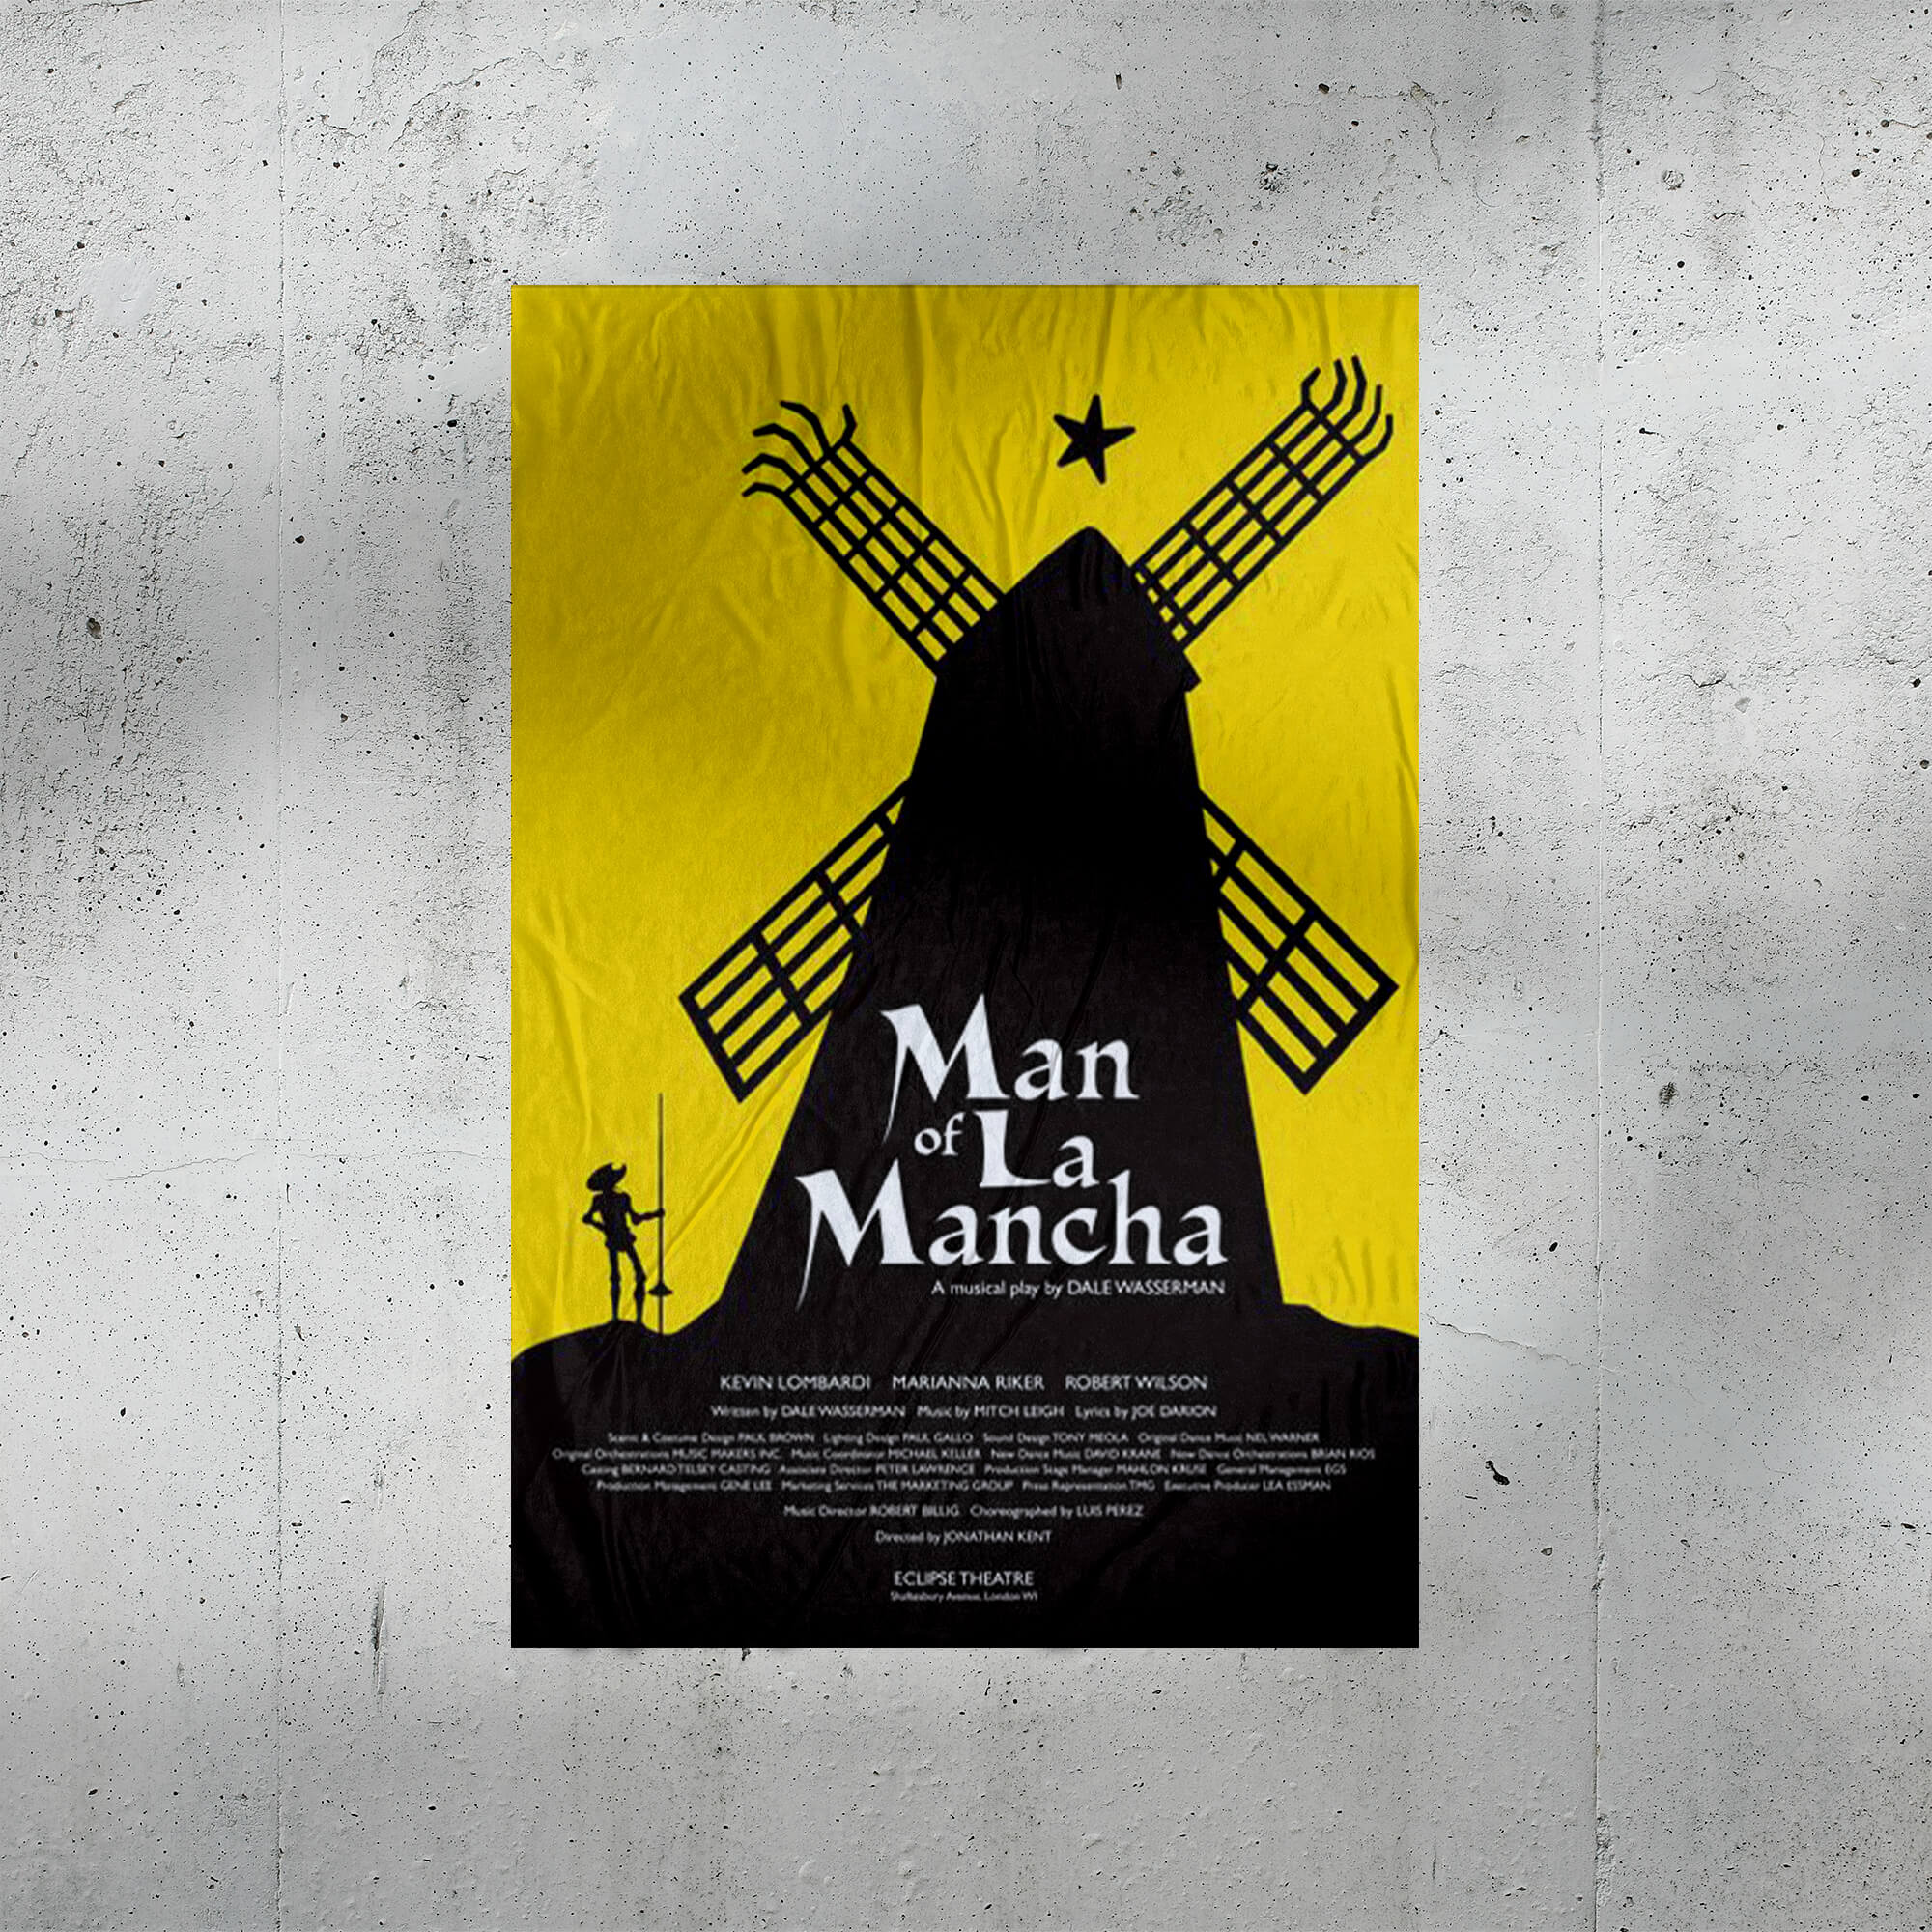 Free Theater Poster Mockup PSD Template